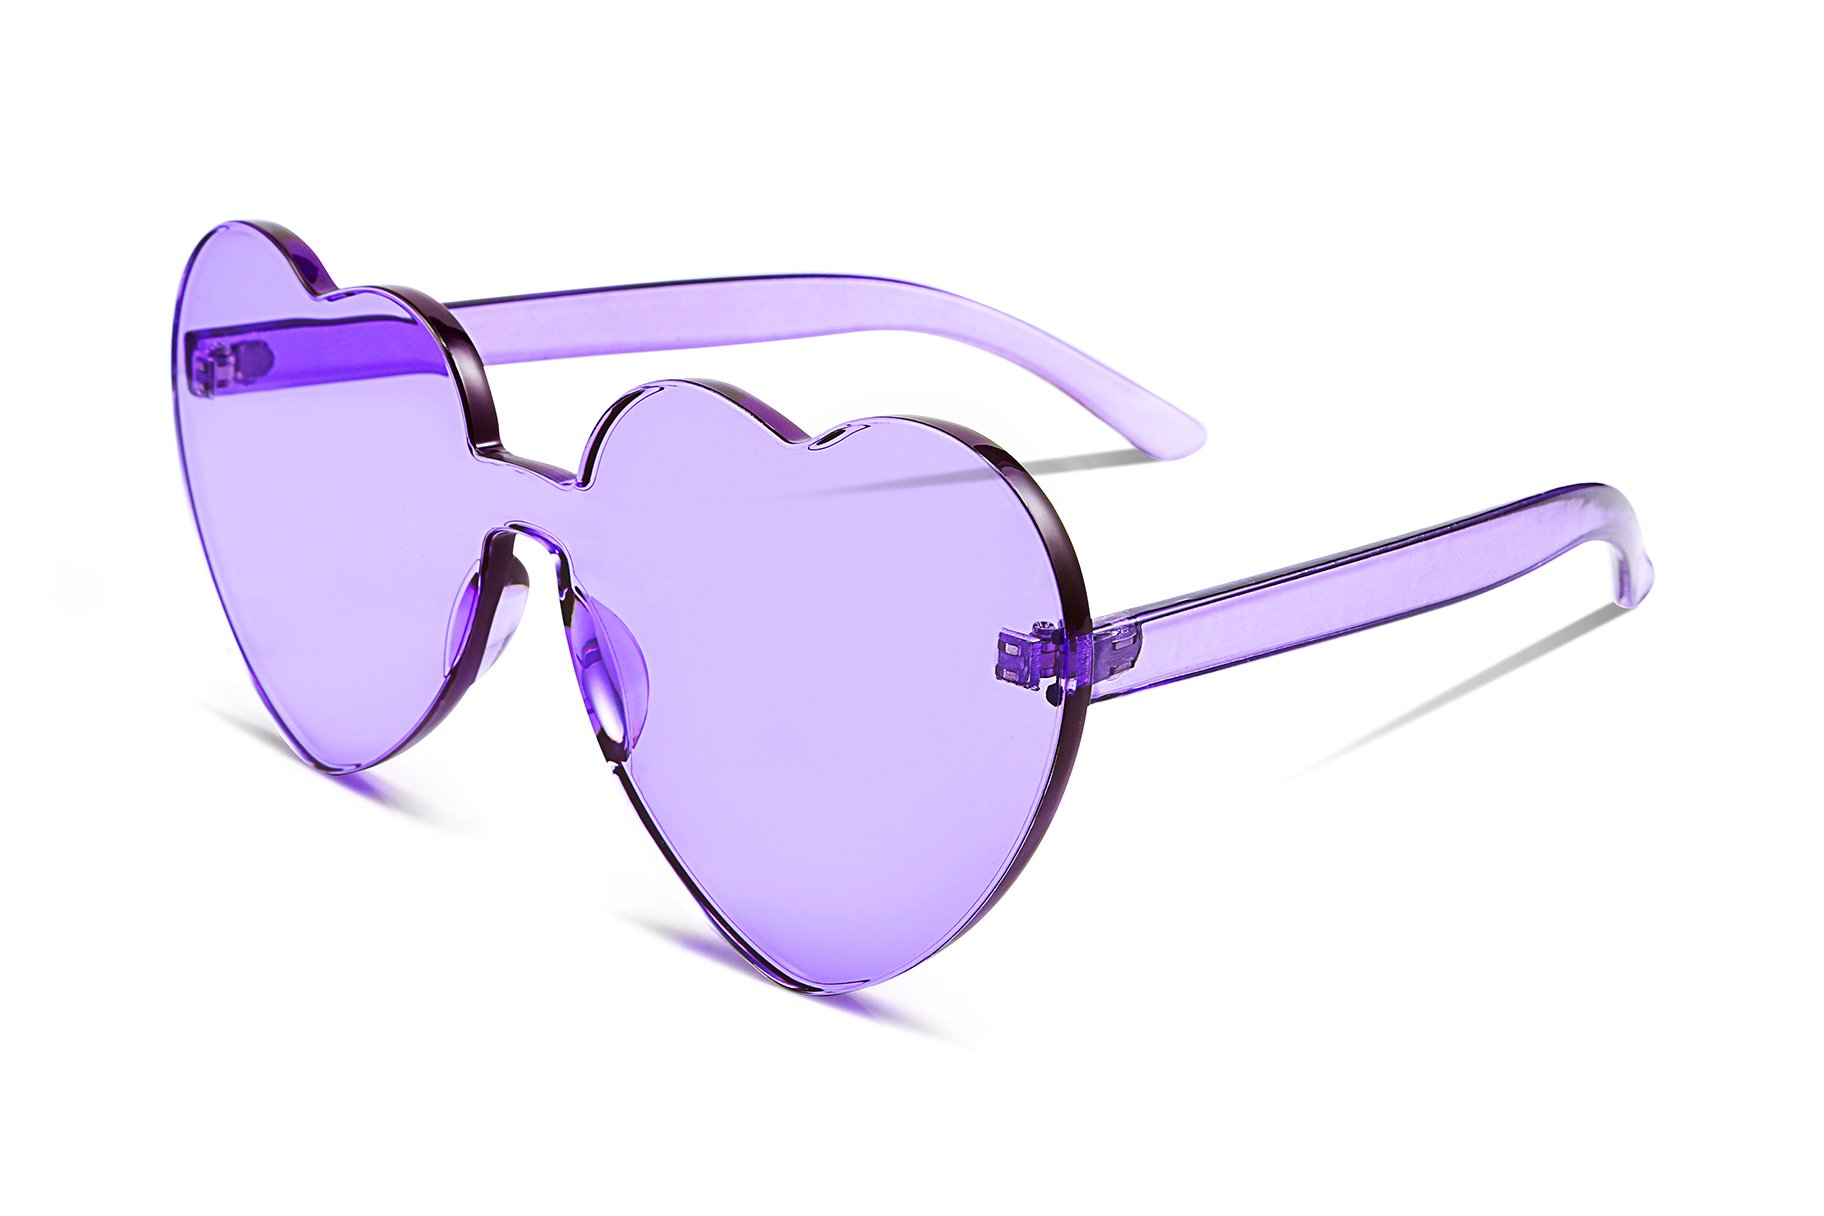 FEISEDY Heart Shaped Love Sunglasses Rimless One Piece Stylish Transparent Lens B2419 by FEISEDY (Image #1)